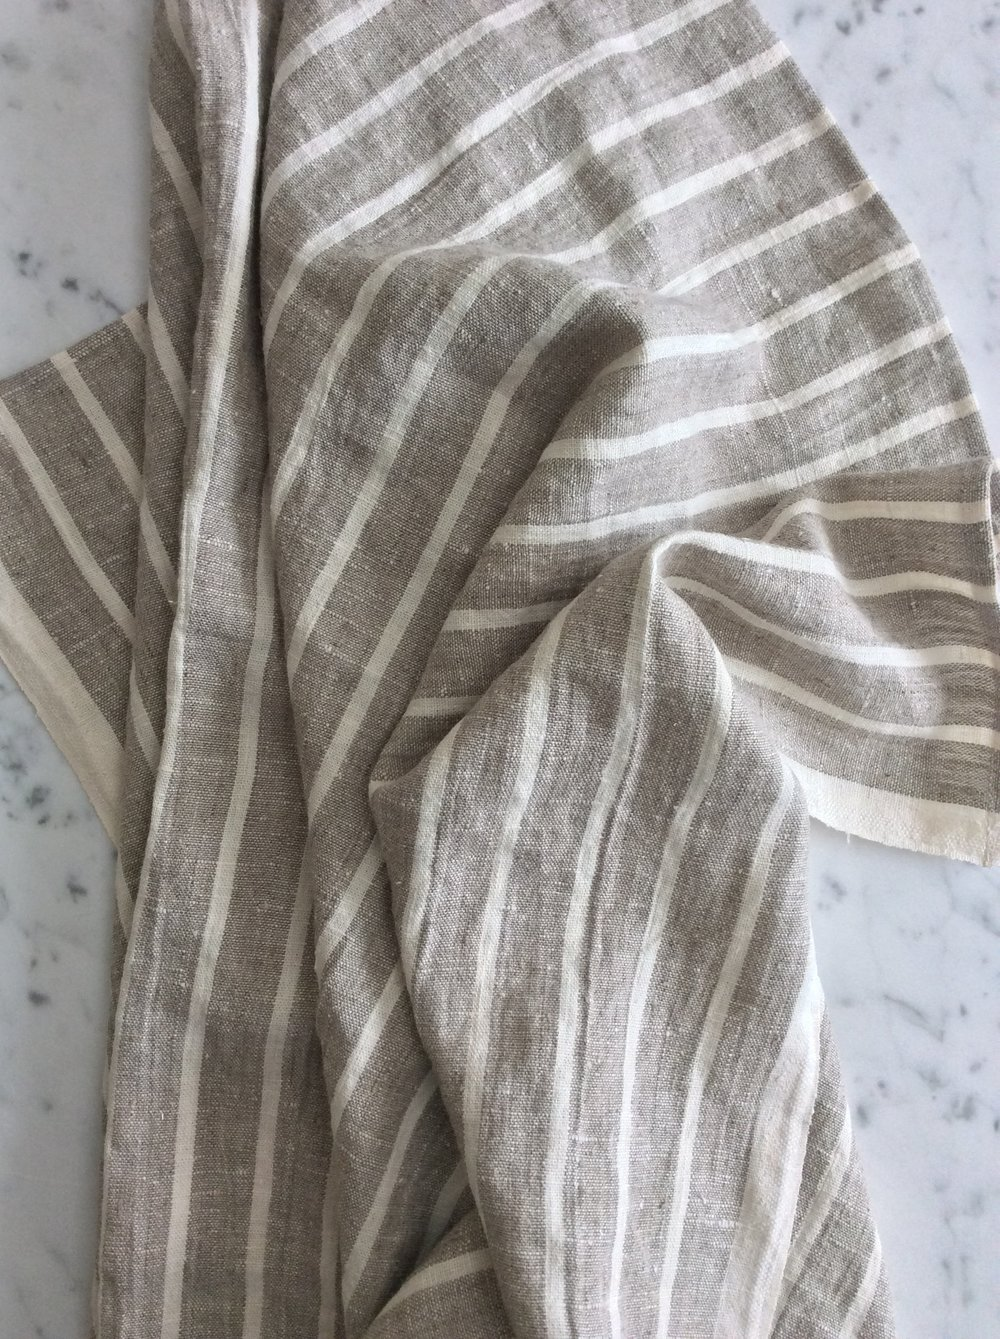 thin_striped_natiural_soft_linen_towel_le_fil_rouge_textiles.jpeg